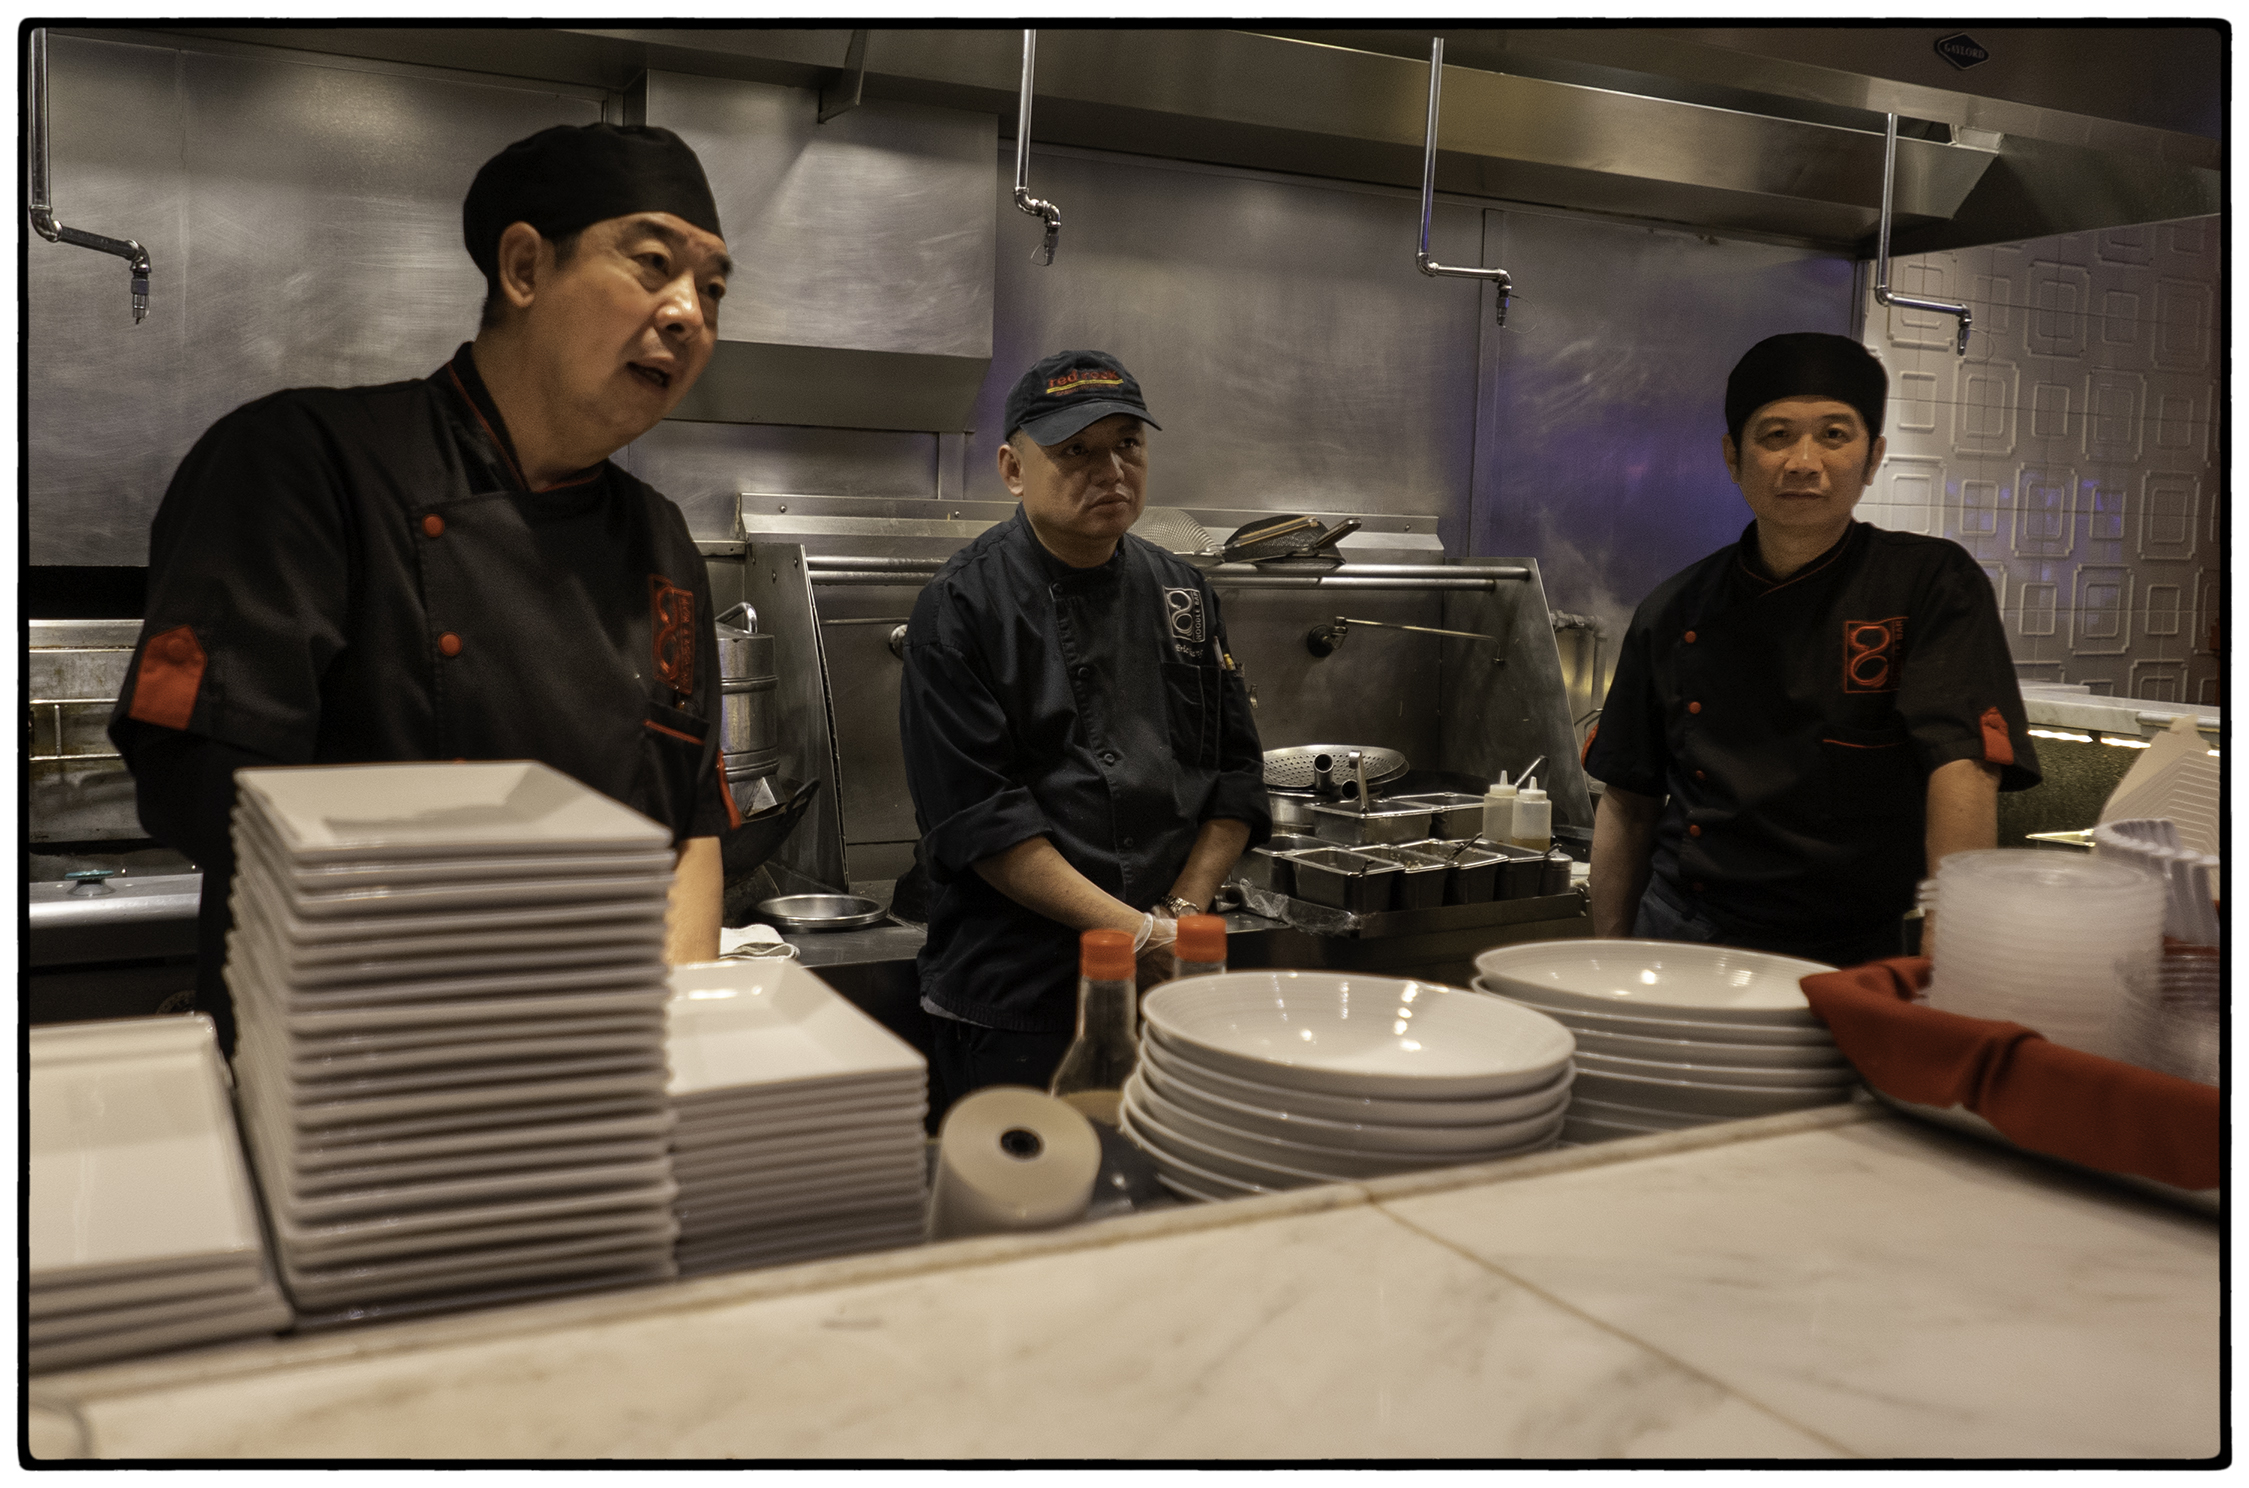 Three Chefs, the Noodle Restaurant, Red Rock Casino